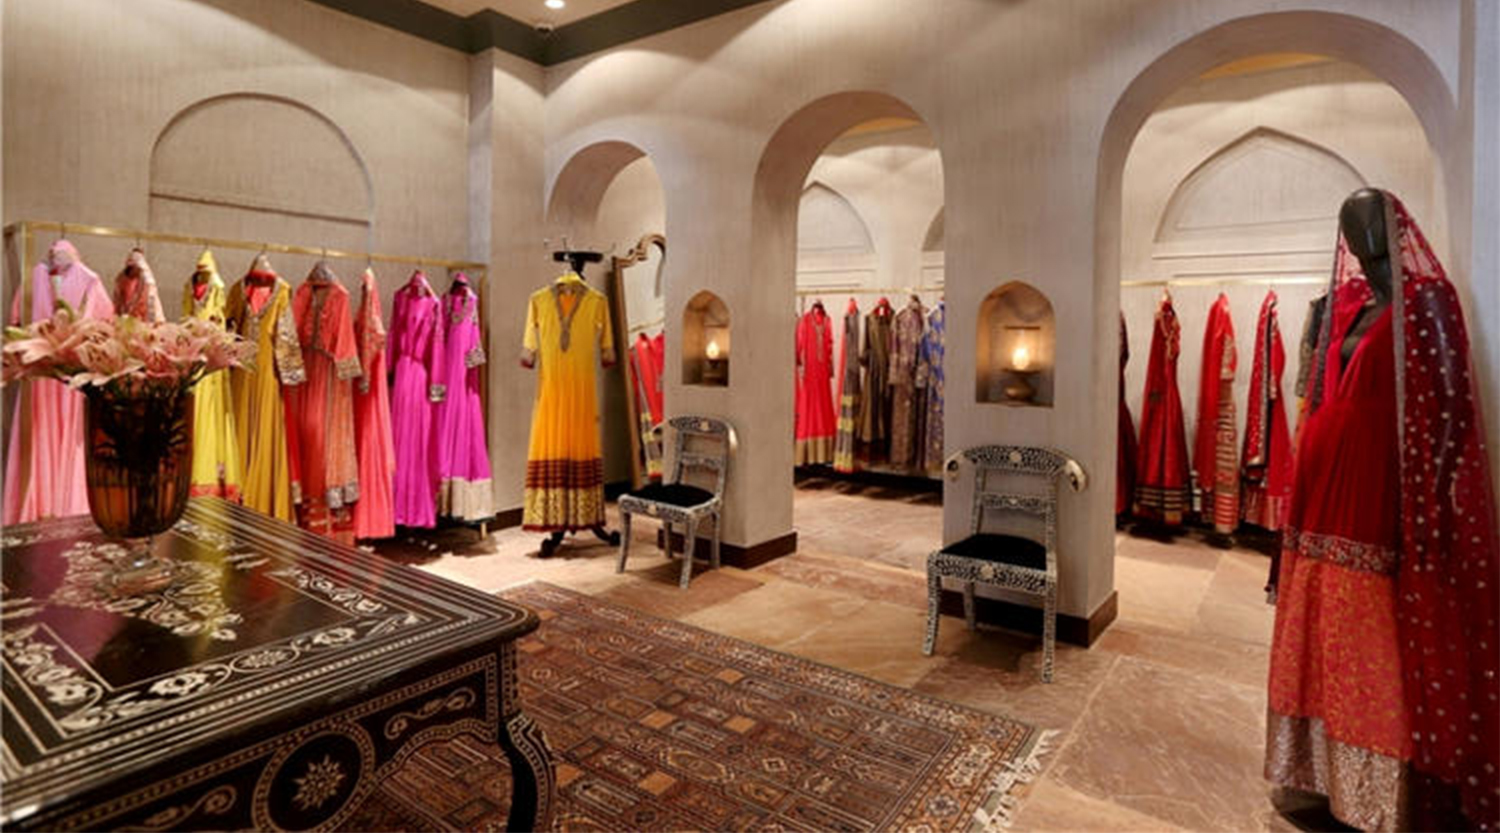 Indian Clothing Store Interior Design For Ladies Garment Shop Boutique Store Design Retail Shop Interior Design Ideas